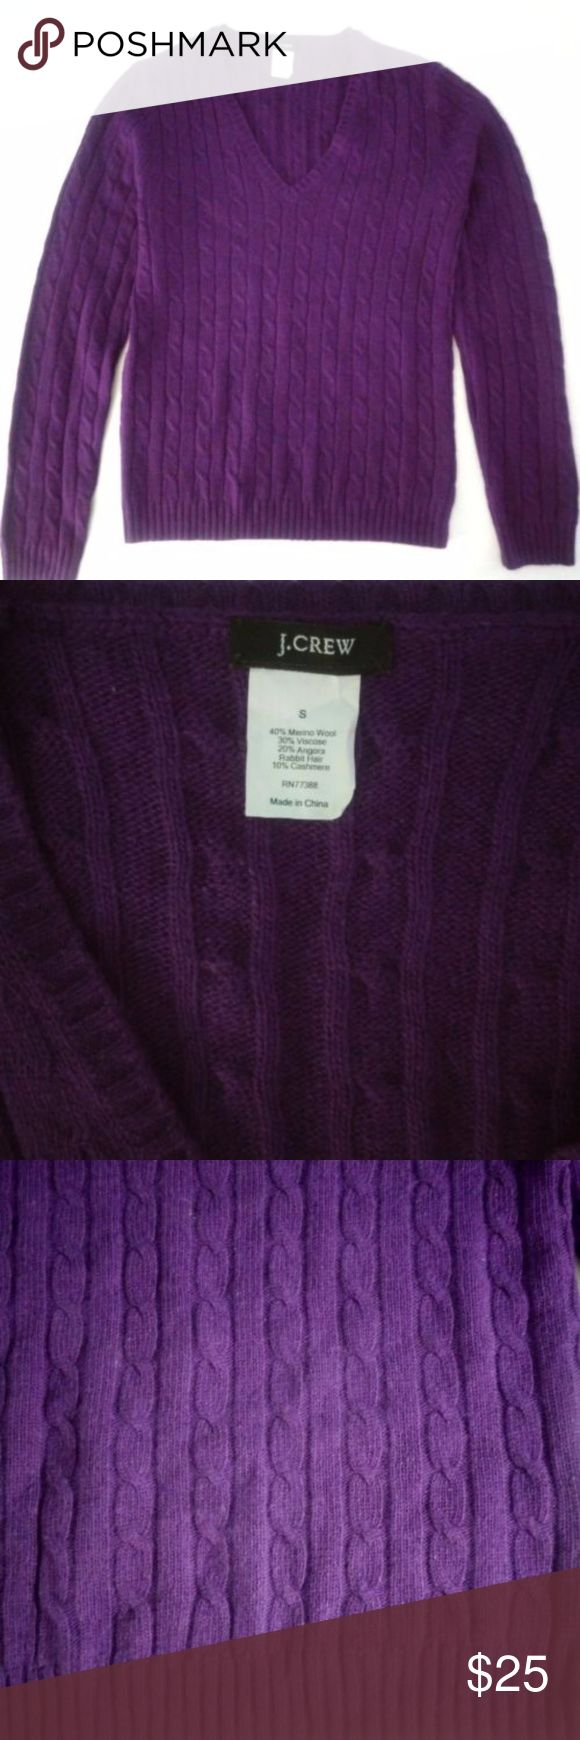 J Crew purple v-neck wool blend women's sweater J.Crew women's sweater in size small.  Fabric is a mix of wool, rabbit, cashmere and viscose fibers.   Style: v-neck cable link.  Sleeves: long   MEASUREMENTS ARE FLAT LAY. Length of 23 in  Sleeves 24 in  Chest / bust 17 in. J. Crew Sweaters V-Necks